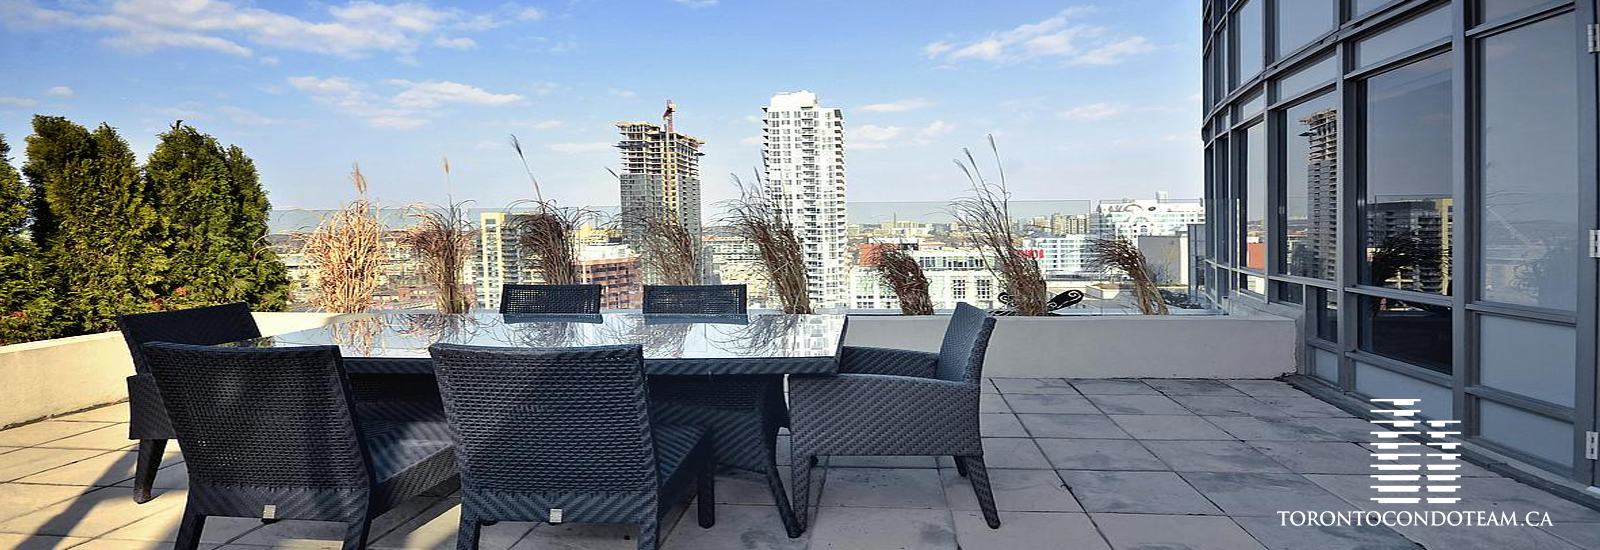 20 Blue Jays Way Condos For Sale